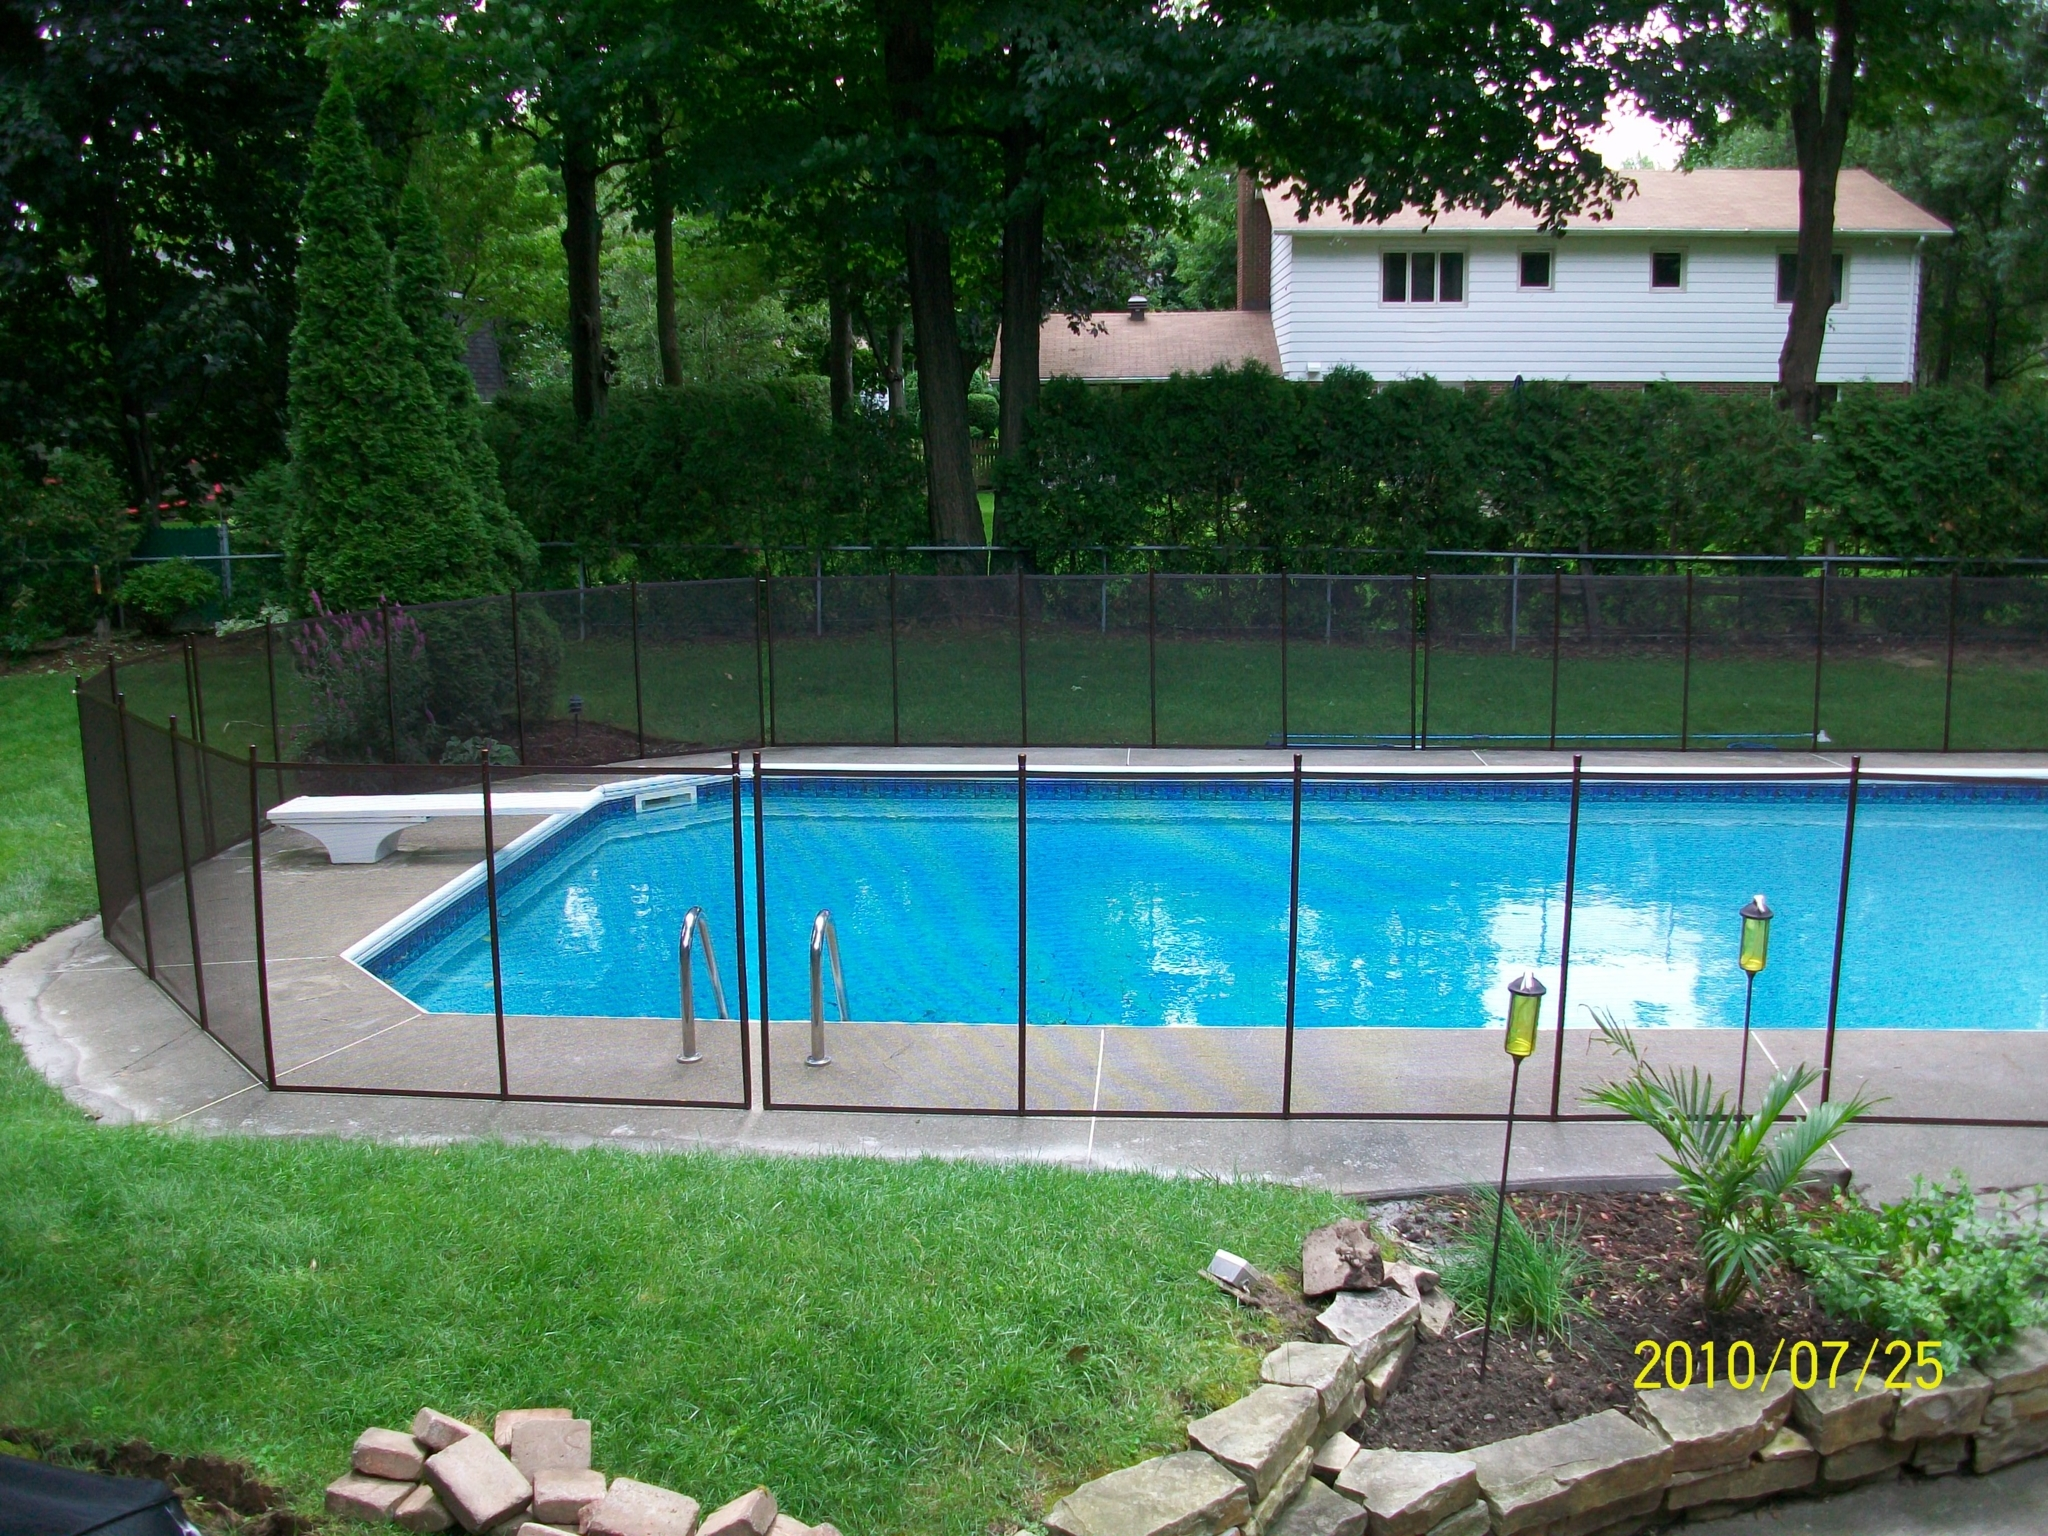 Cl tures amovibles pool guard montr al qc ourbis for Cloture amovible piscine